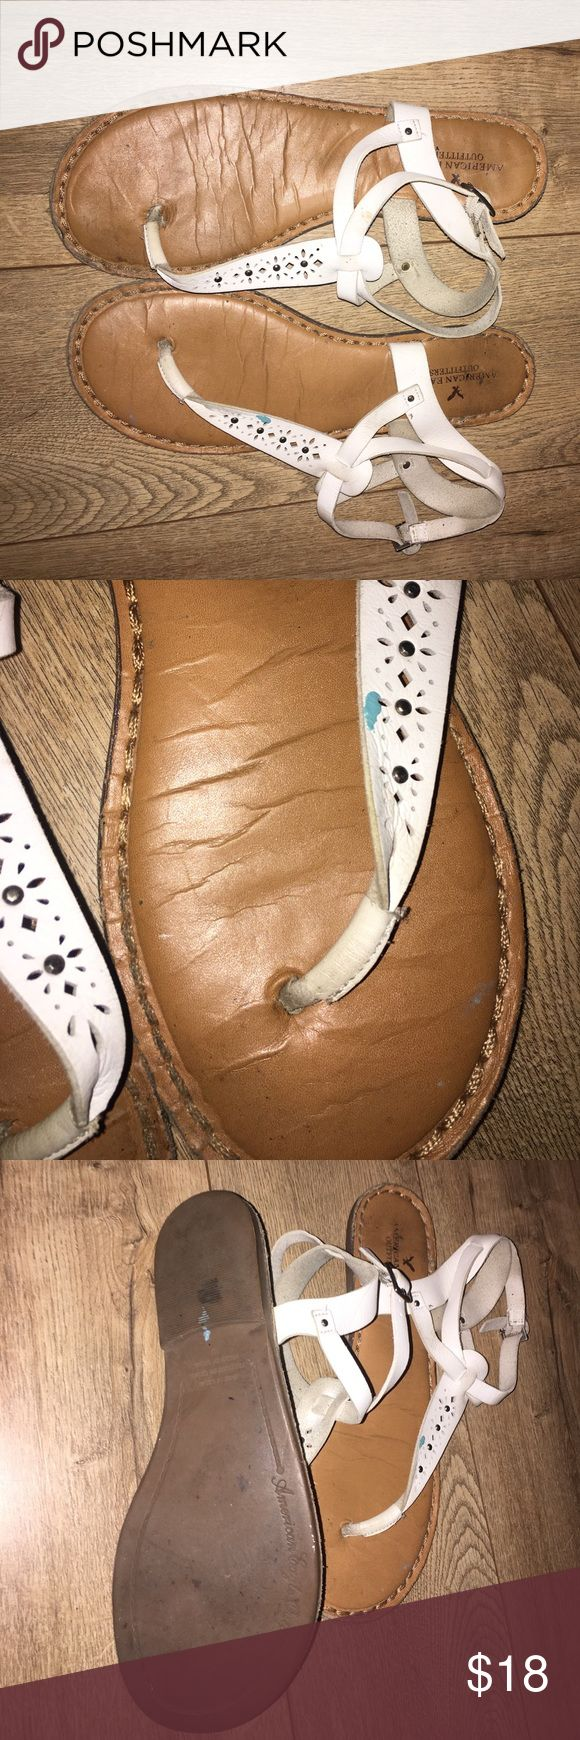 AEO WHITE LEATHER THONG SANDLES Sz10 pre-loved priced accordingly white leather with buckle around ankle price is firm these are my daughters so I cannot trade nor can I reduce price also as seen in photo there is a small blue mark on one of the sandals it looks like paint just needs white shoe polish over American Eagle Outfitters Shoes Sandals